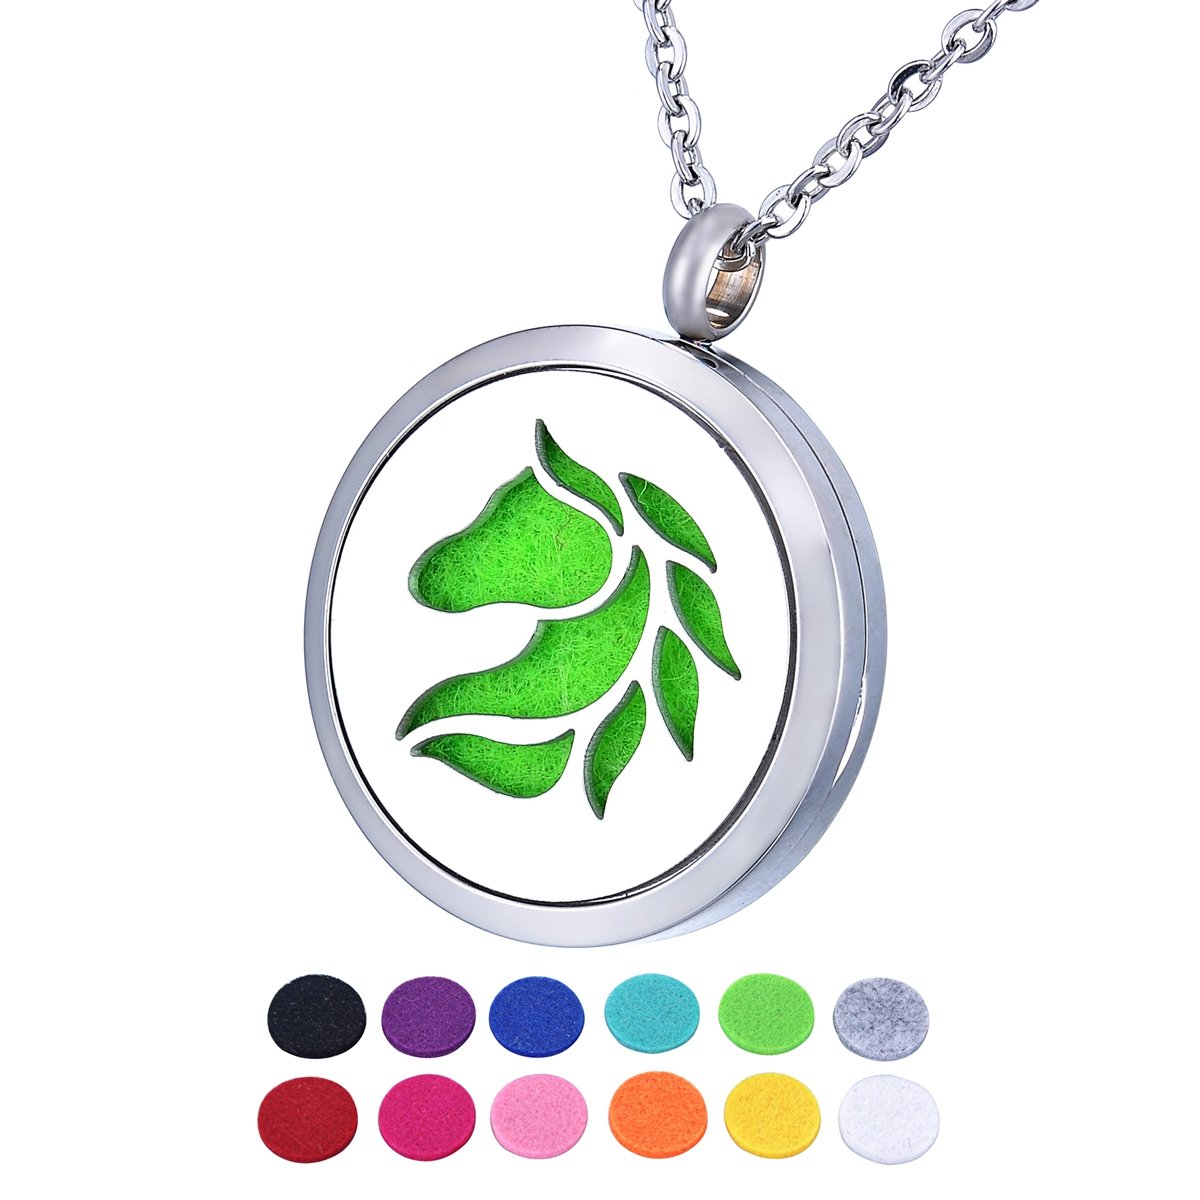 HOUSWEETY Aromatherapy Essential Oil Diffuser Necklace Locket Pendant with 12 Refill Pads HOUSWEETYB123662